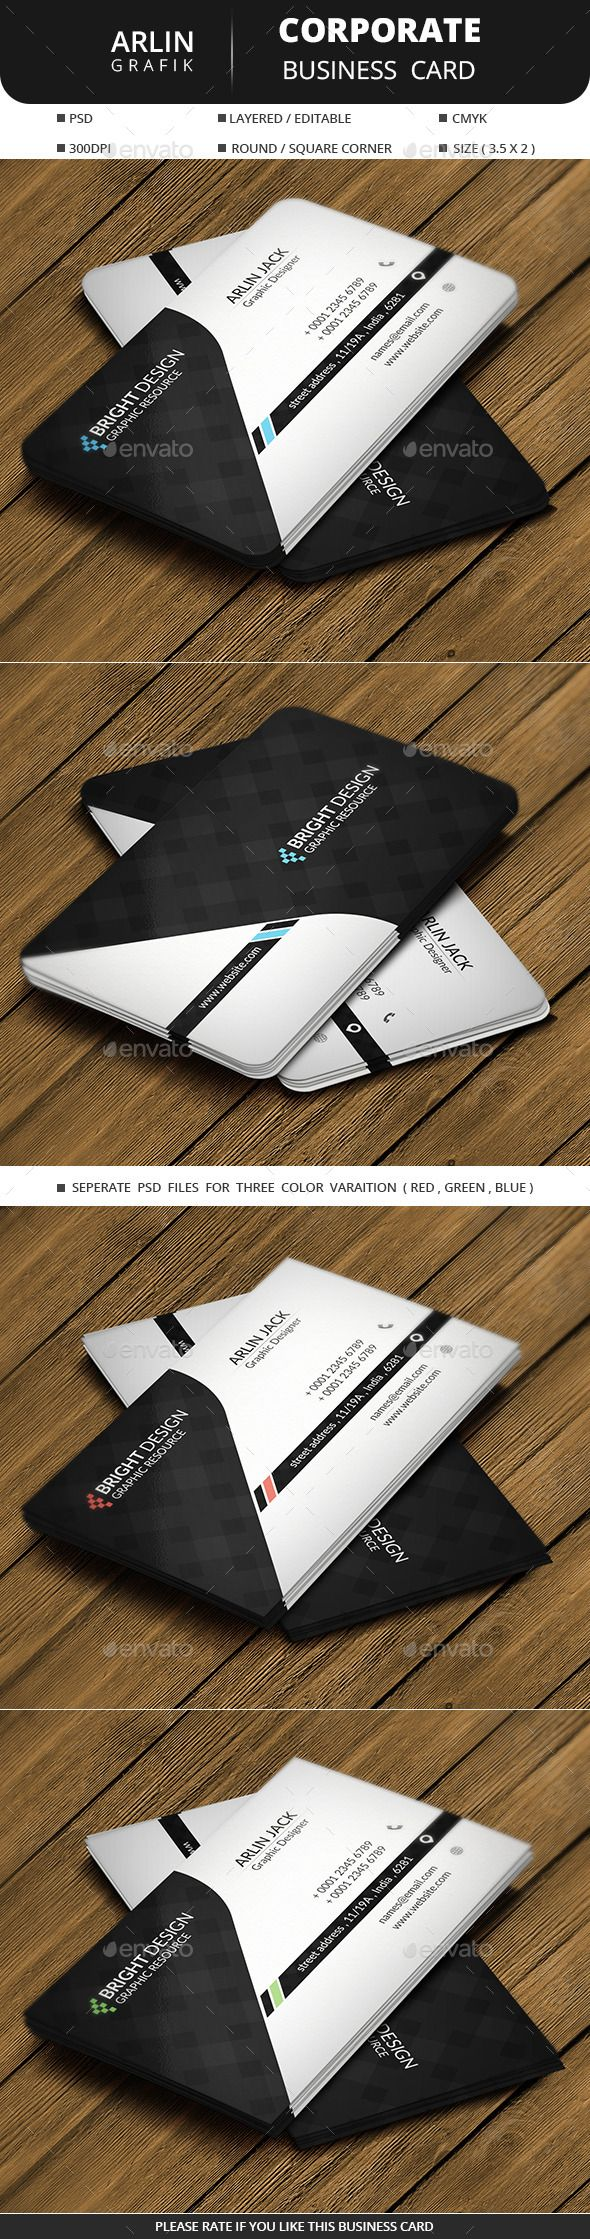 Corporate business card cartes de visita visita e carto corporate business card corporate business cards download here httpgraphicriver reheart Choice Image